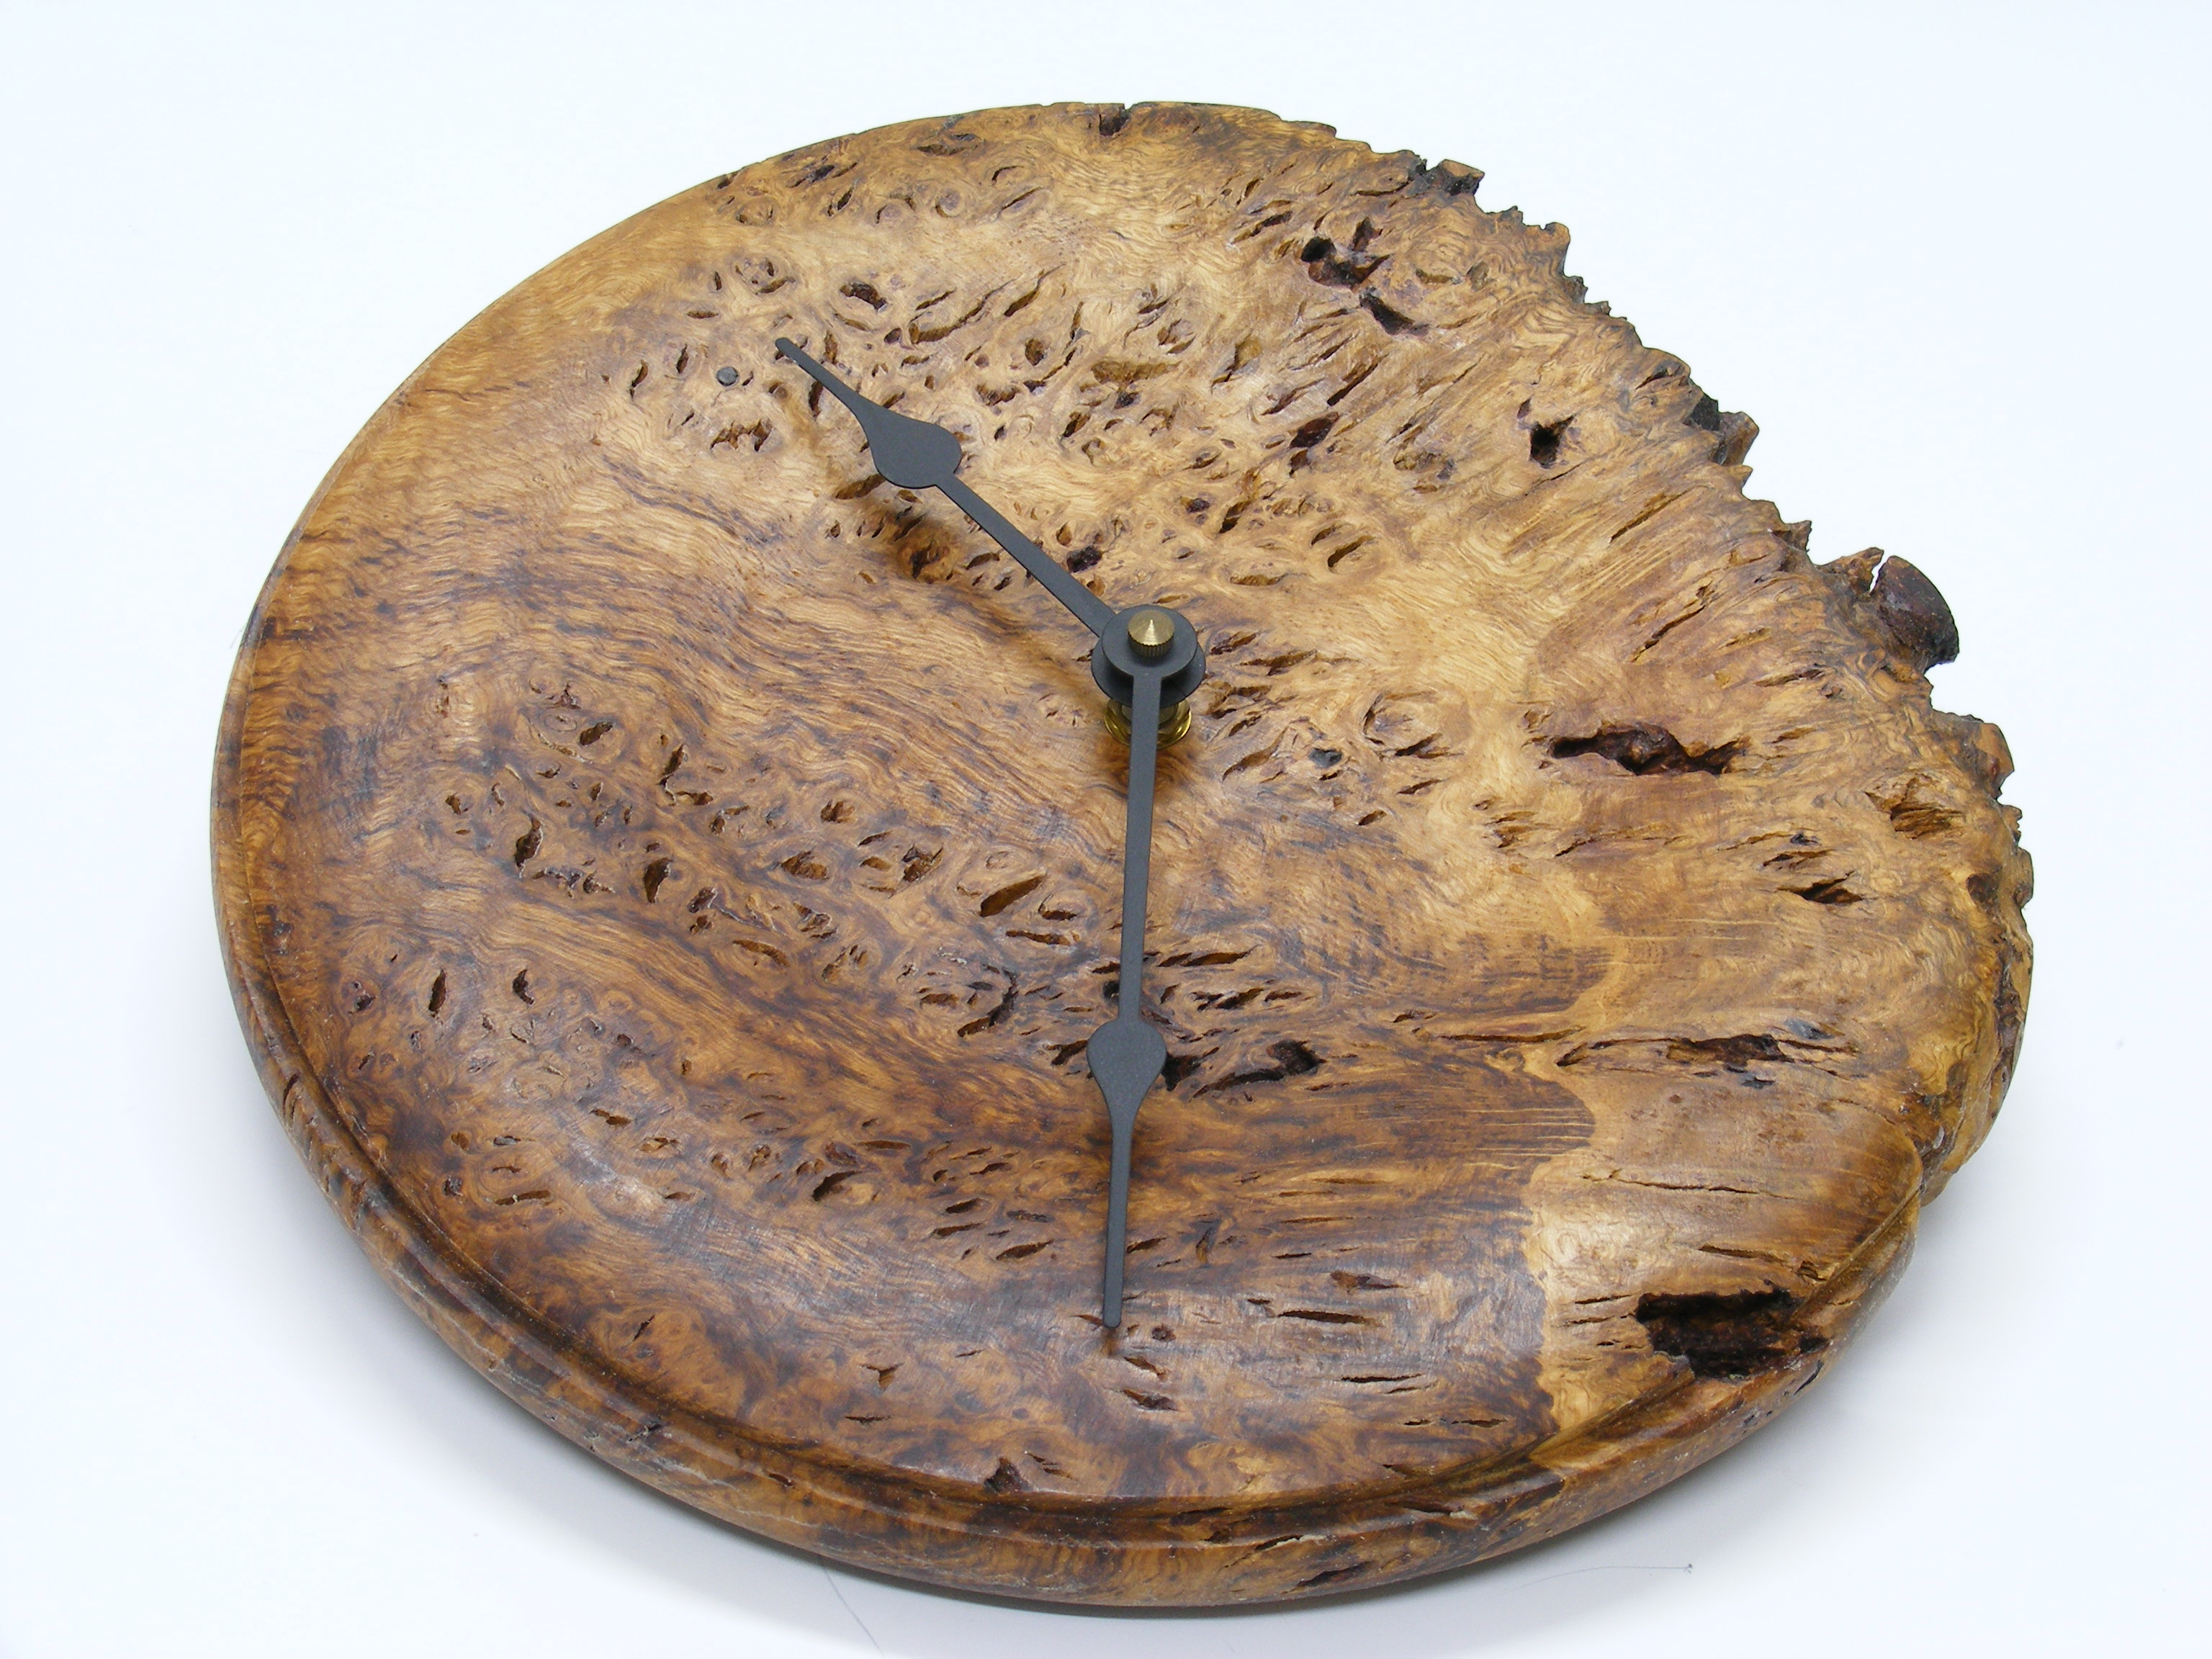 Decorative-Wall-Clock-Rustic-Wooden-Wall-Clock-CLOCK-OakRoot4-O-Oak-RP-2013-137.jpg